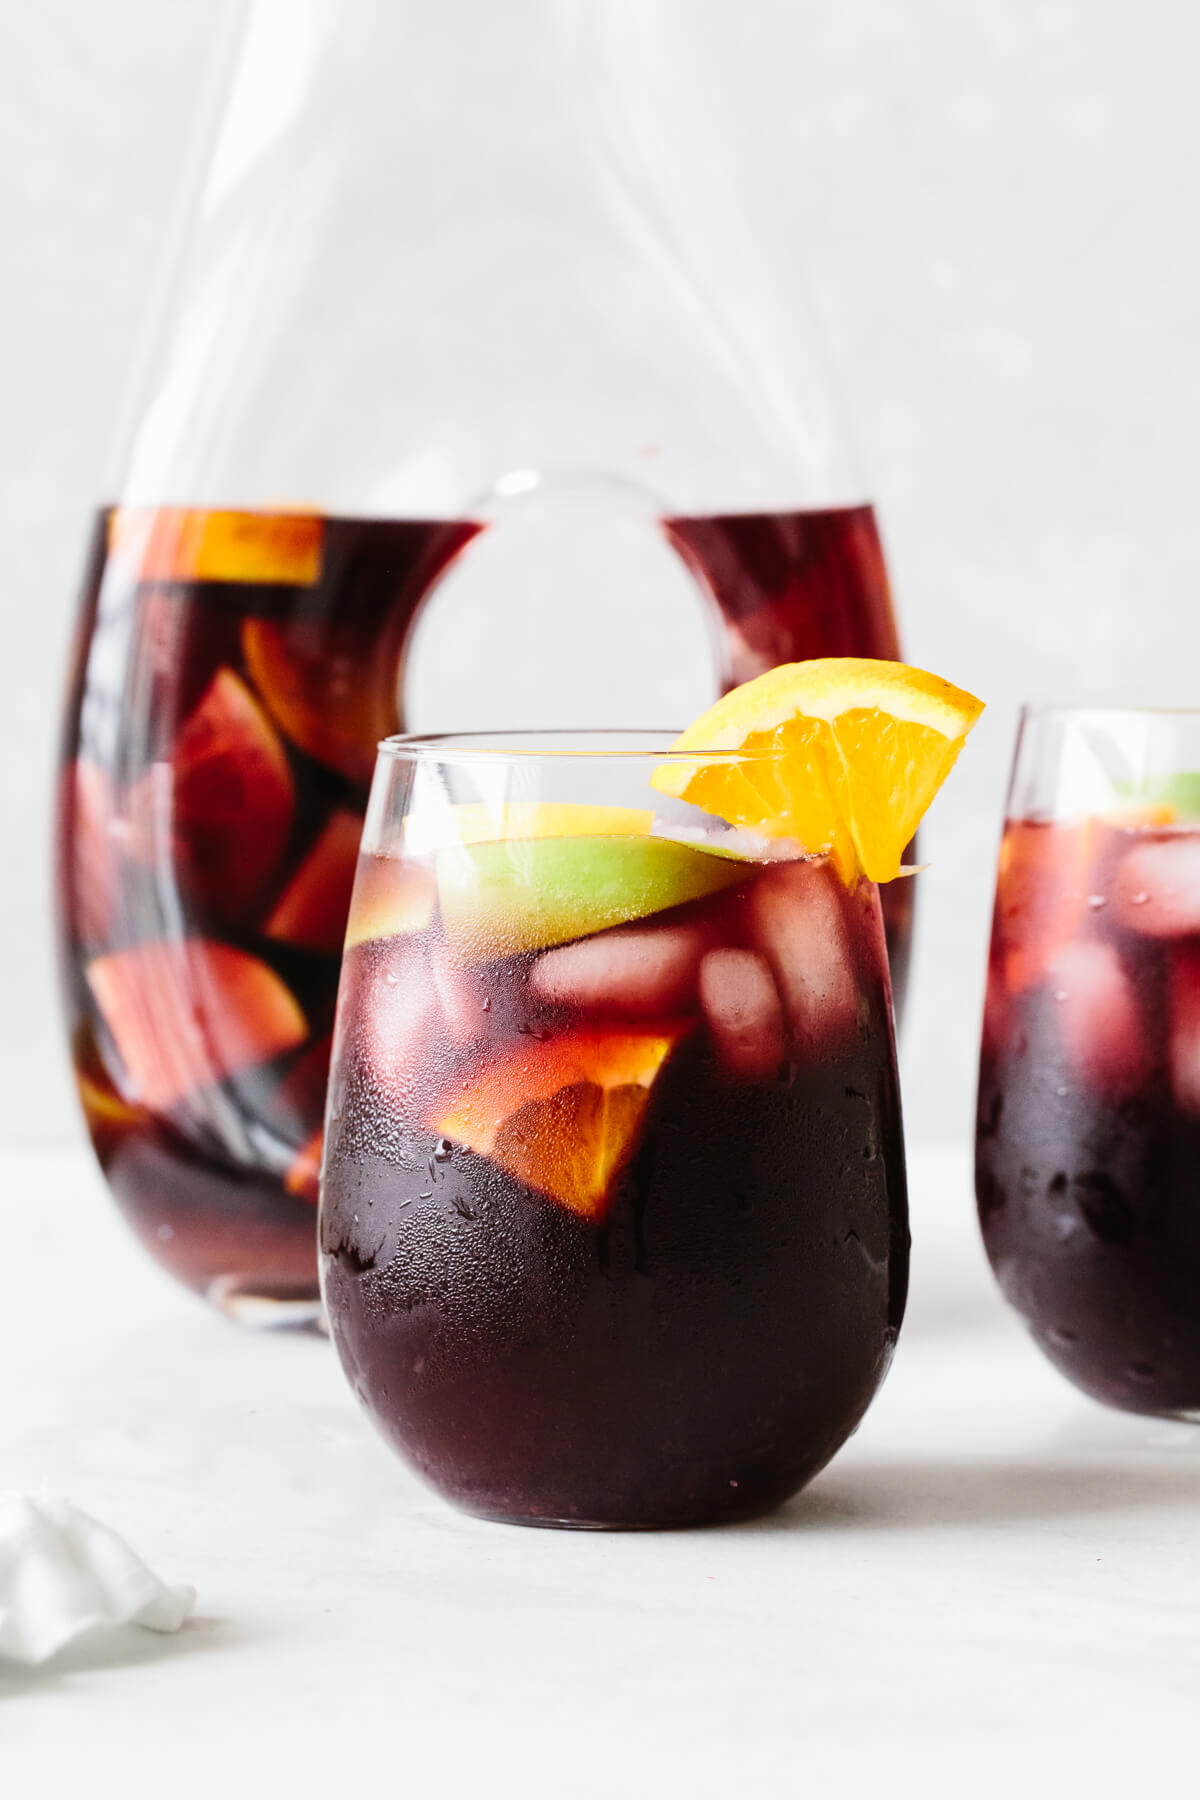 Red sangria in a glass with orange slice garnish and pitcher in the background.